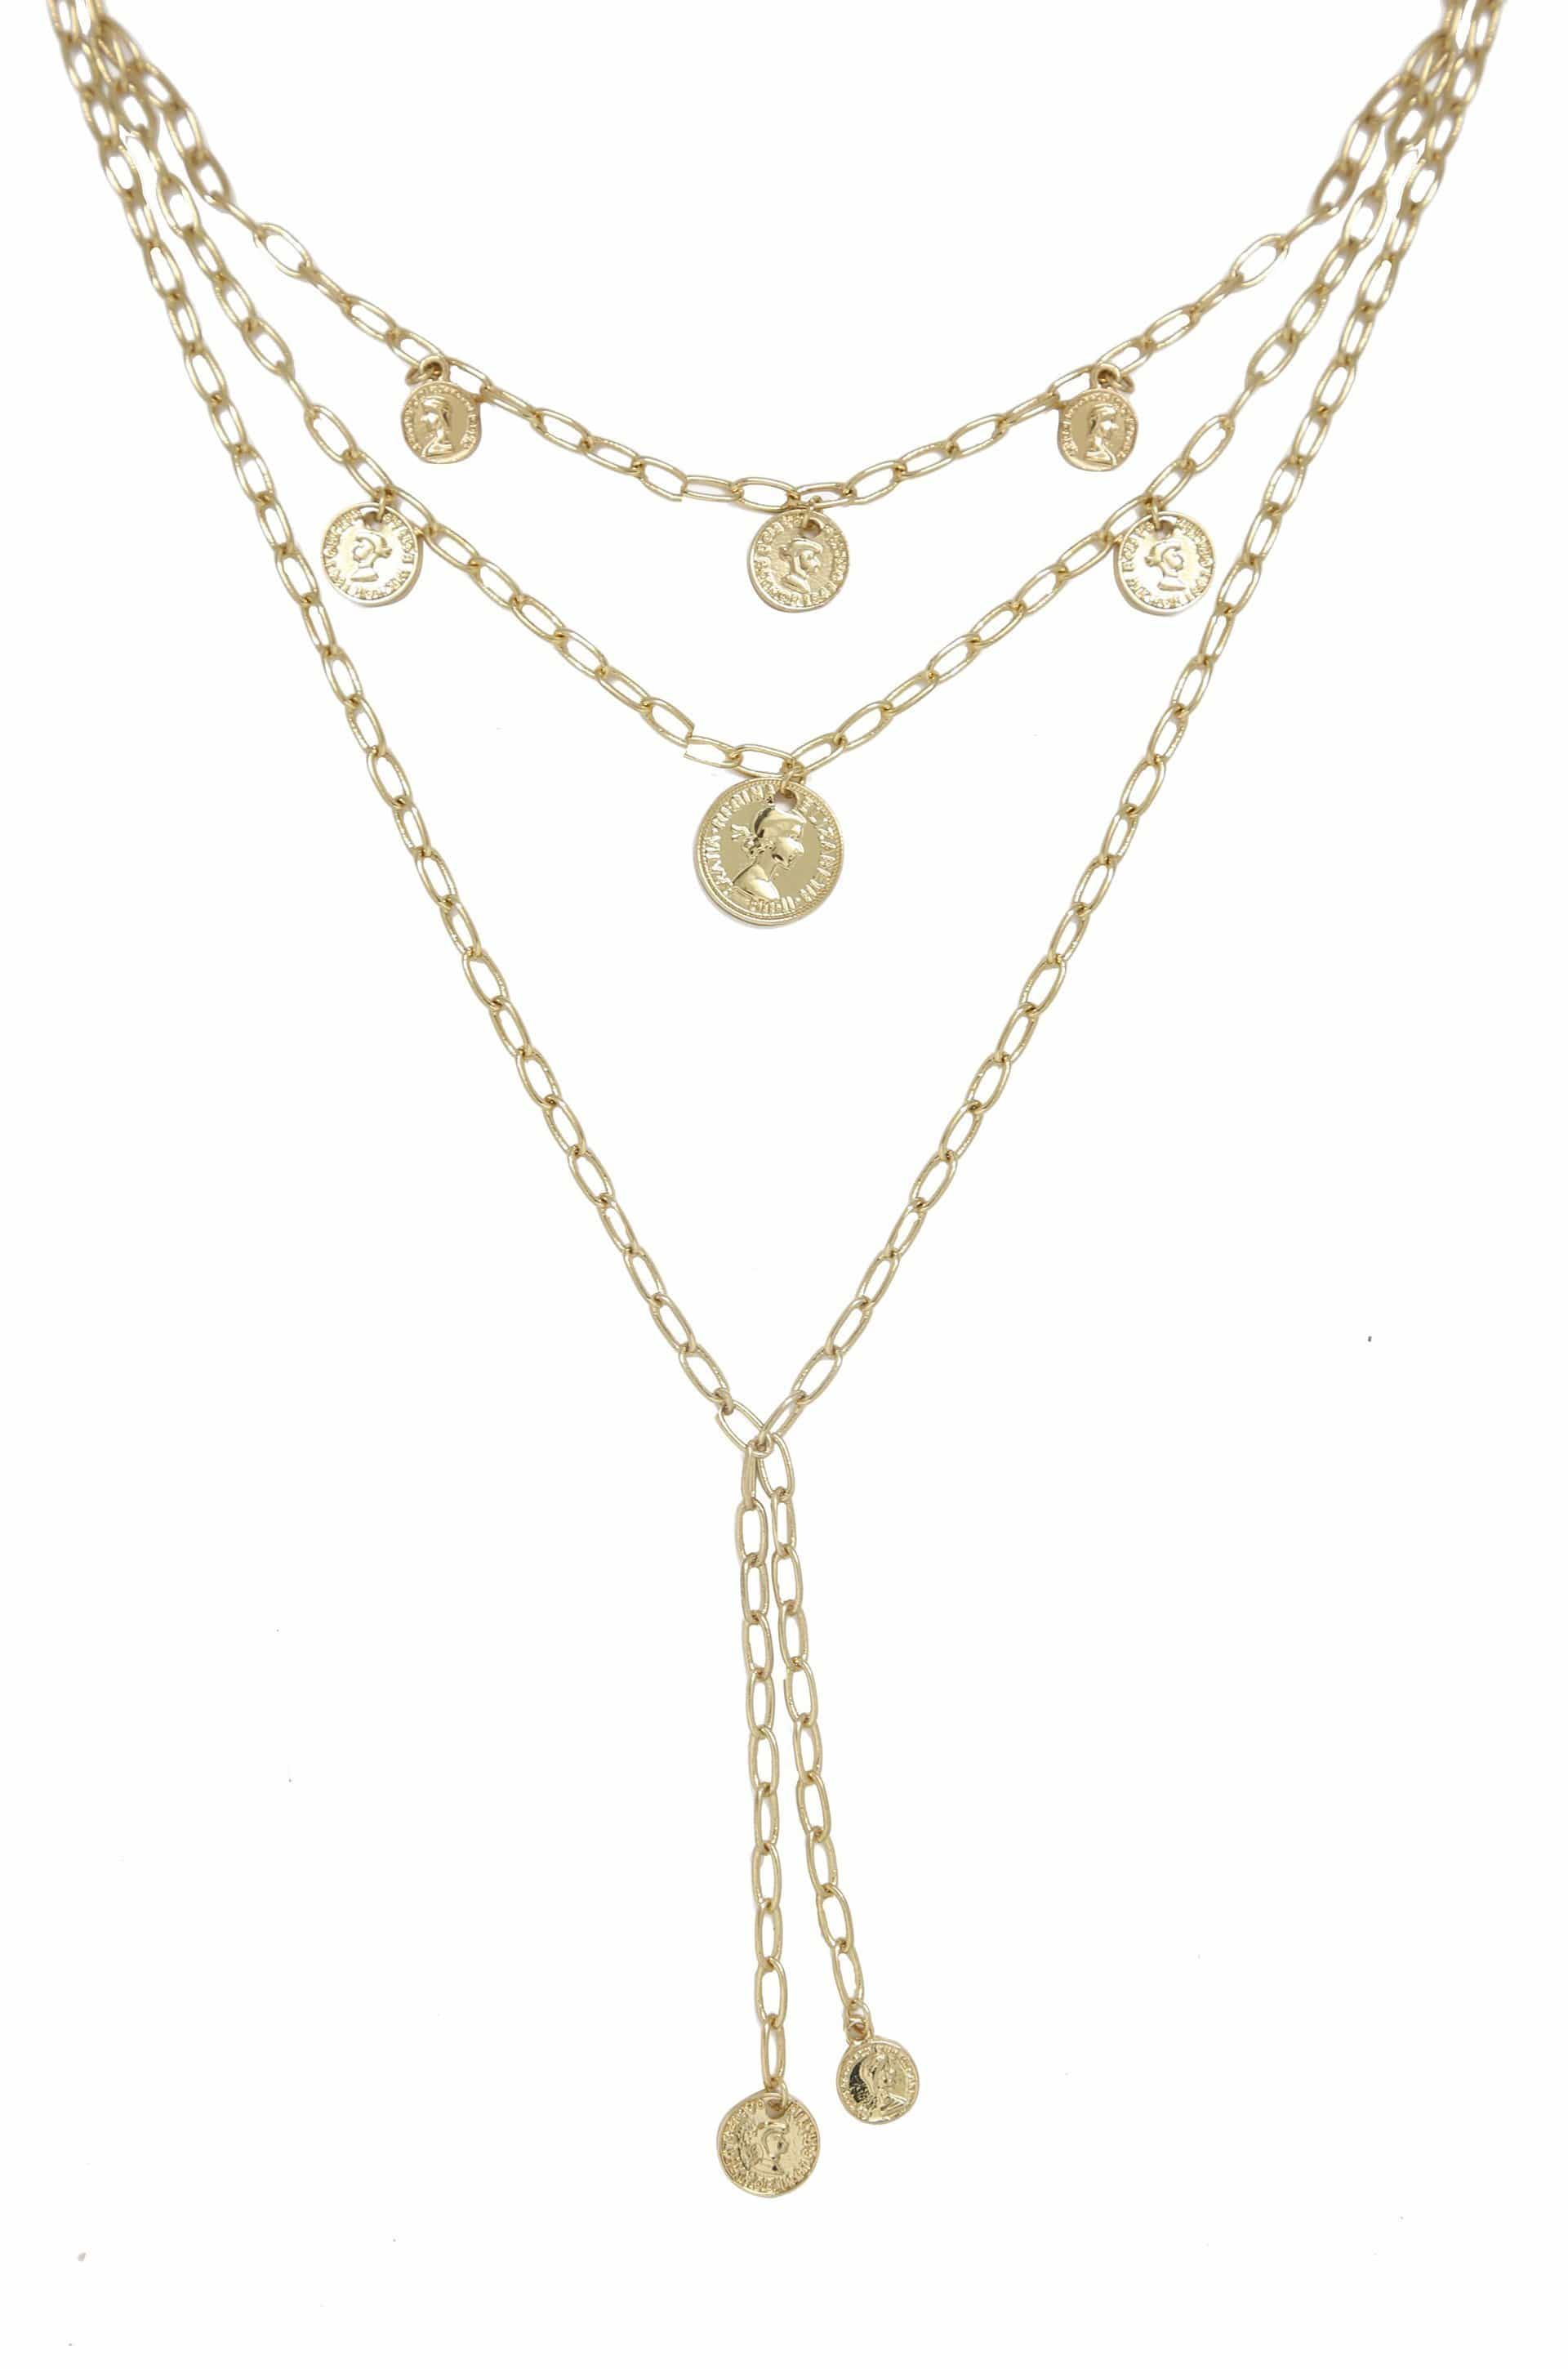 Mini Coin 18k Gold Plated Layered Necklace - SteelJoy!